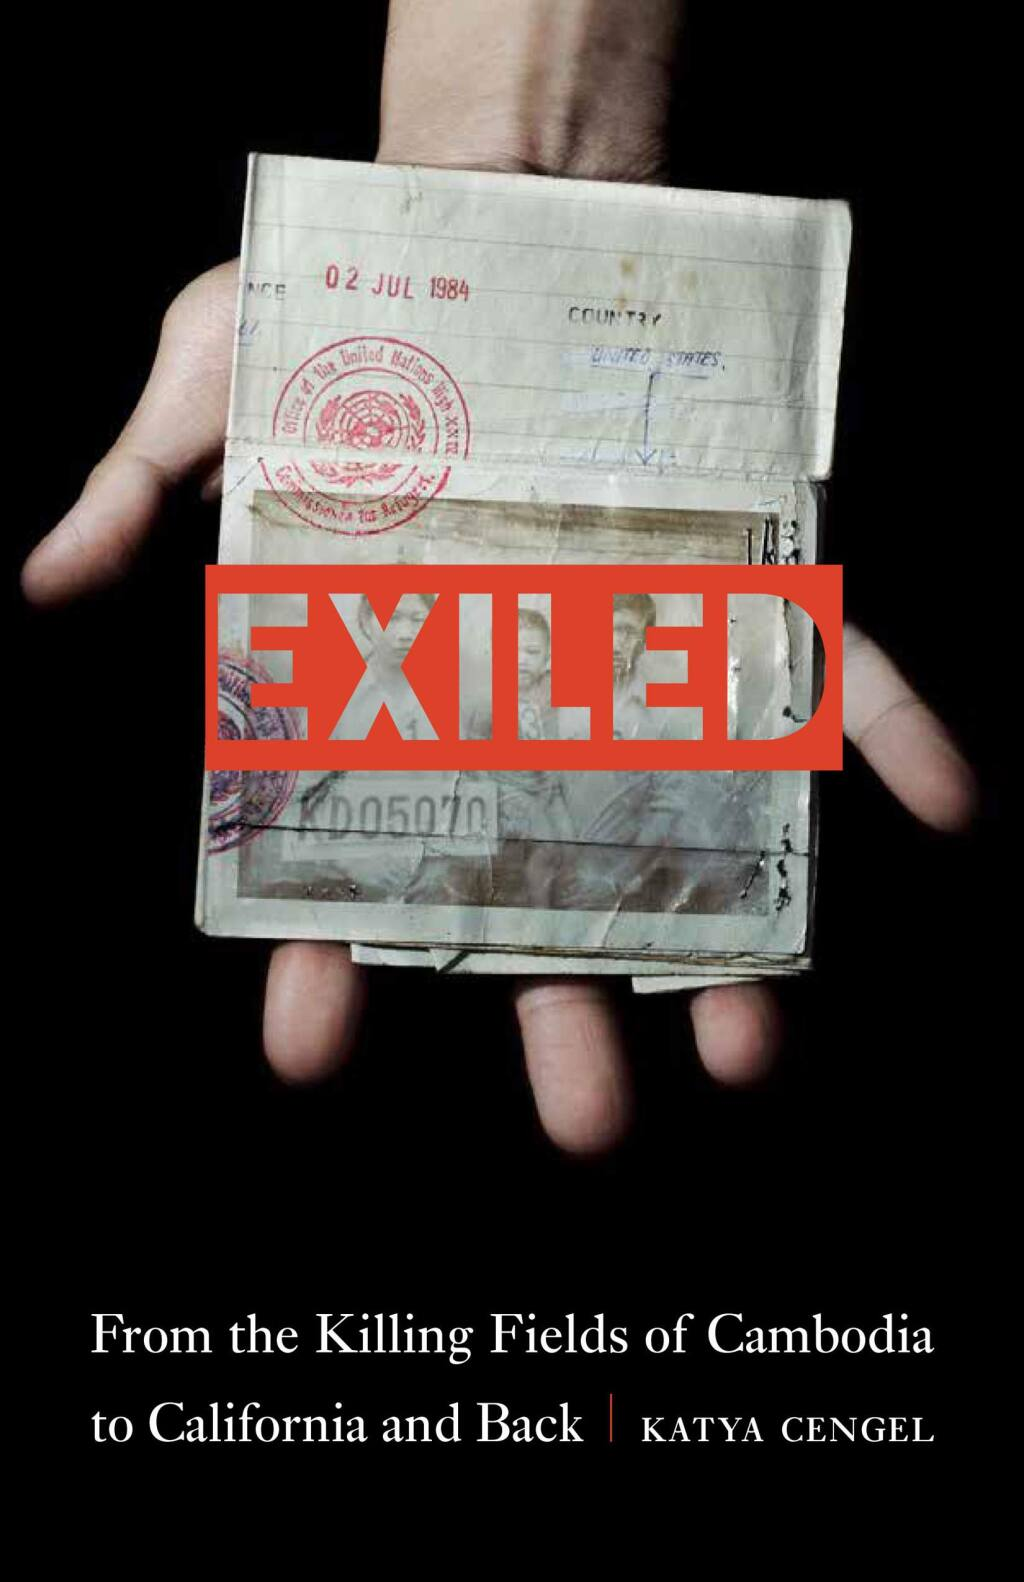 'Exiled' is the title of a new book by journalist Katya Cengel.